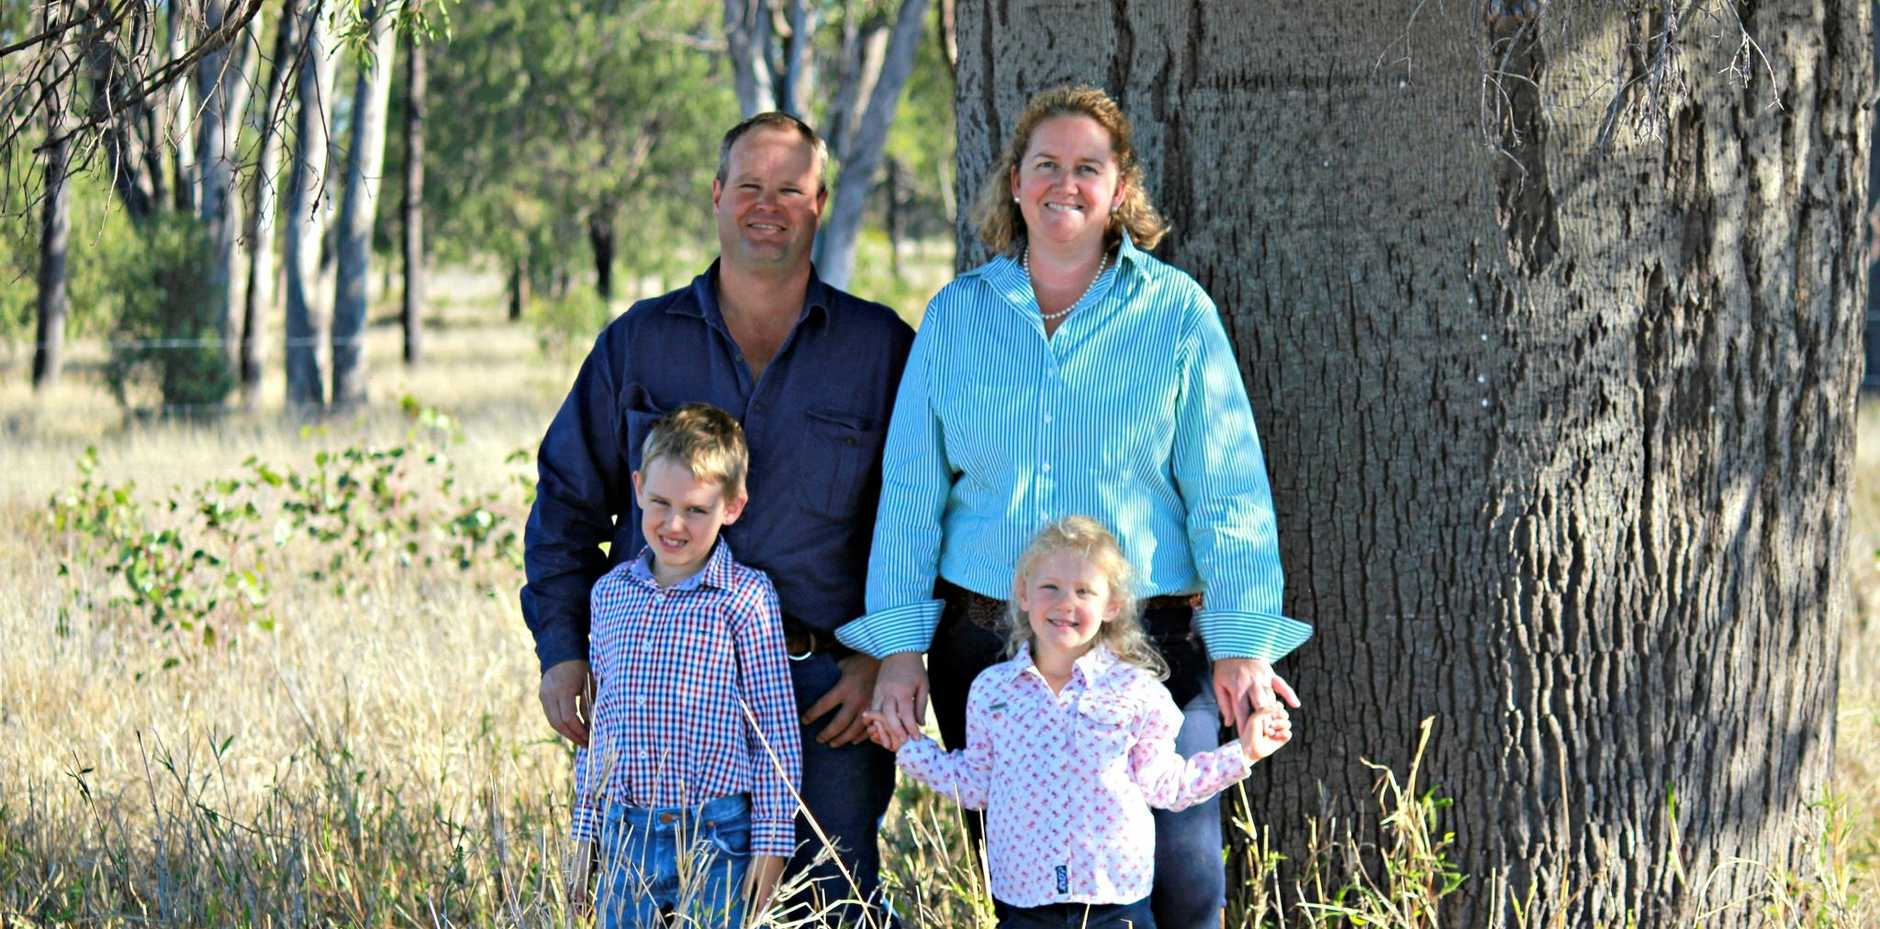 FAMILY PRODUCE: The Beissels are confident the Australian beef industry has something to offer.